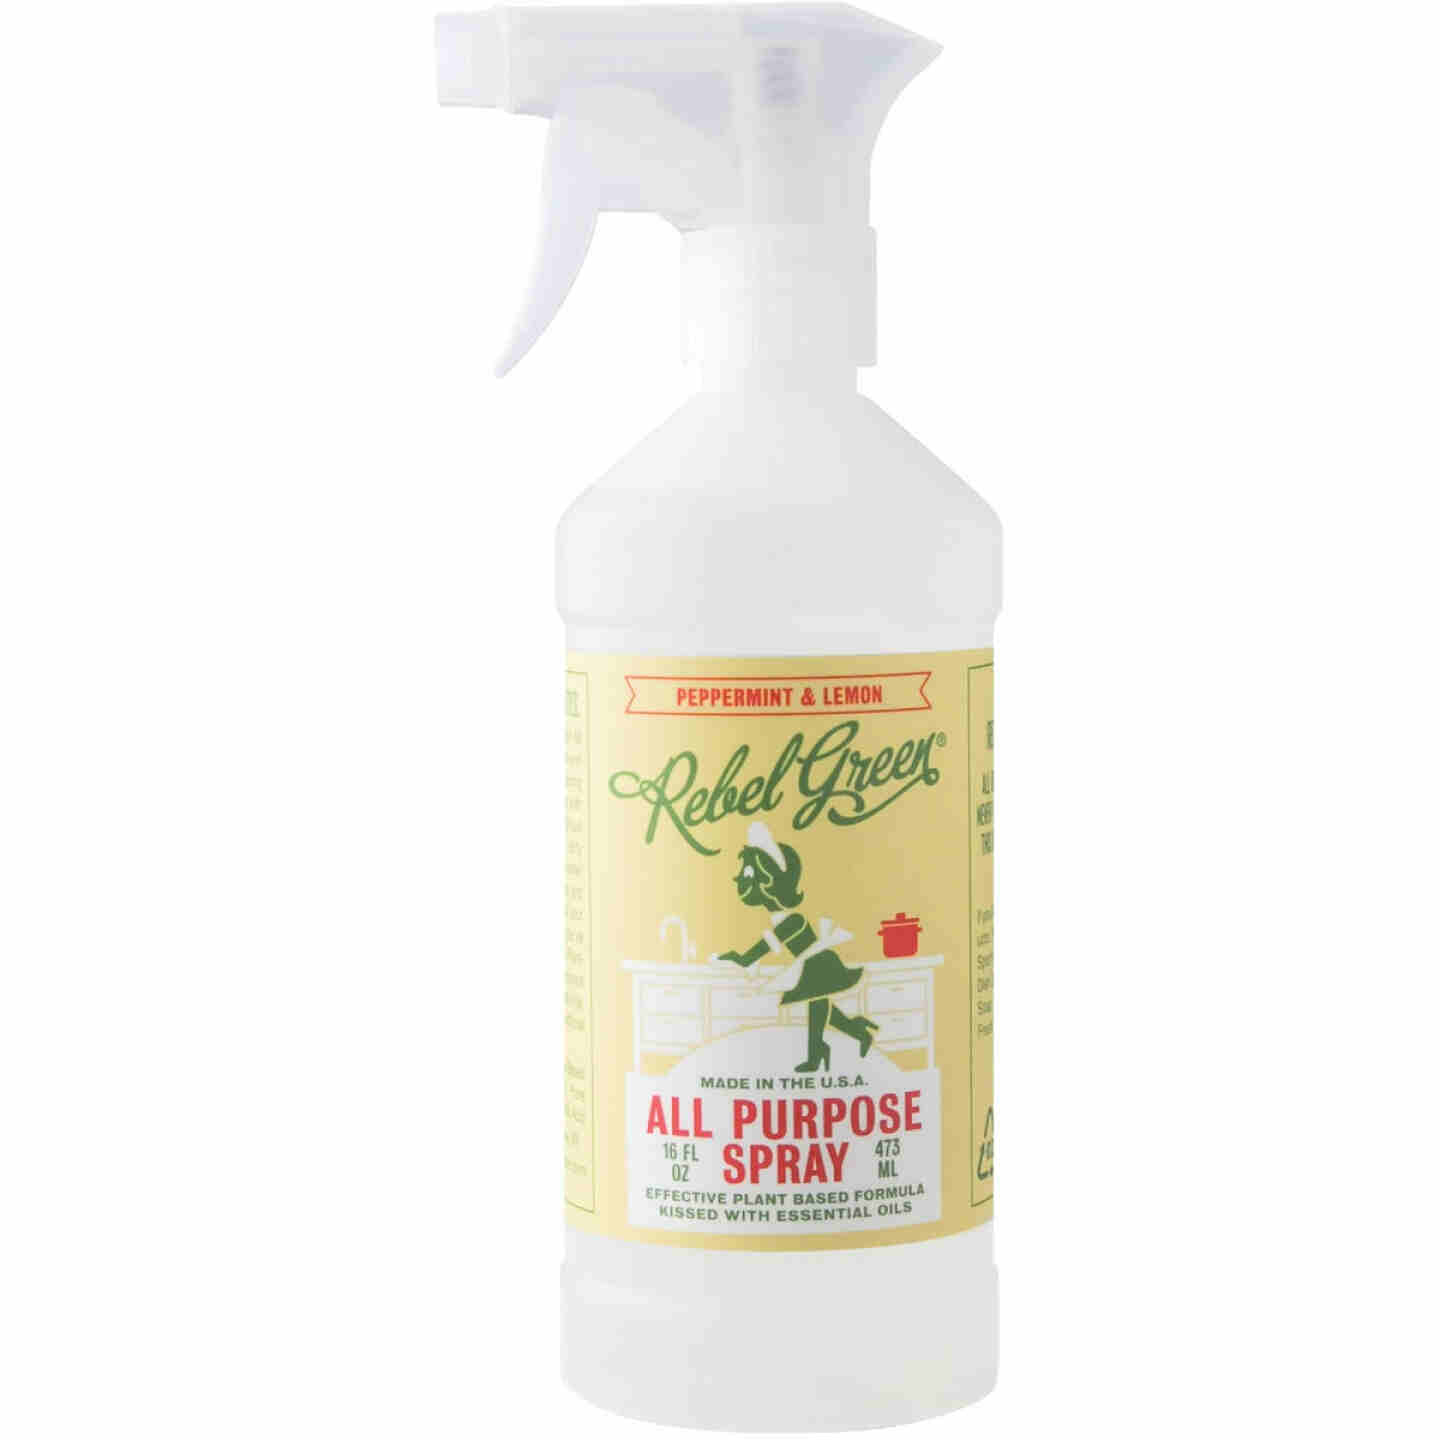 Rebel Green 16 Oz. Peppermint & Lemon Natural All-Purpose Spray Image 1